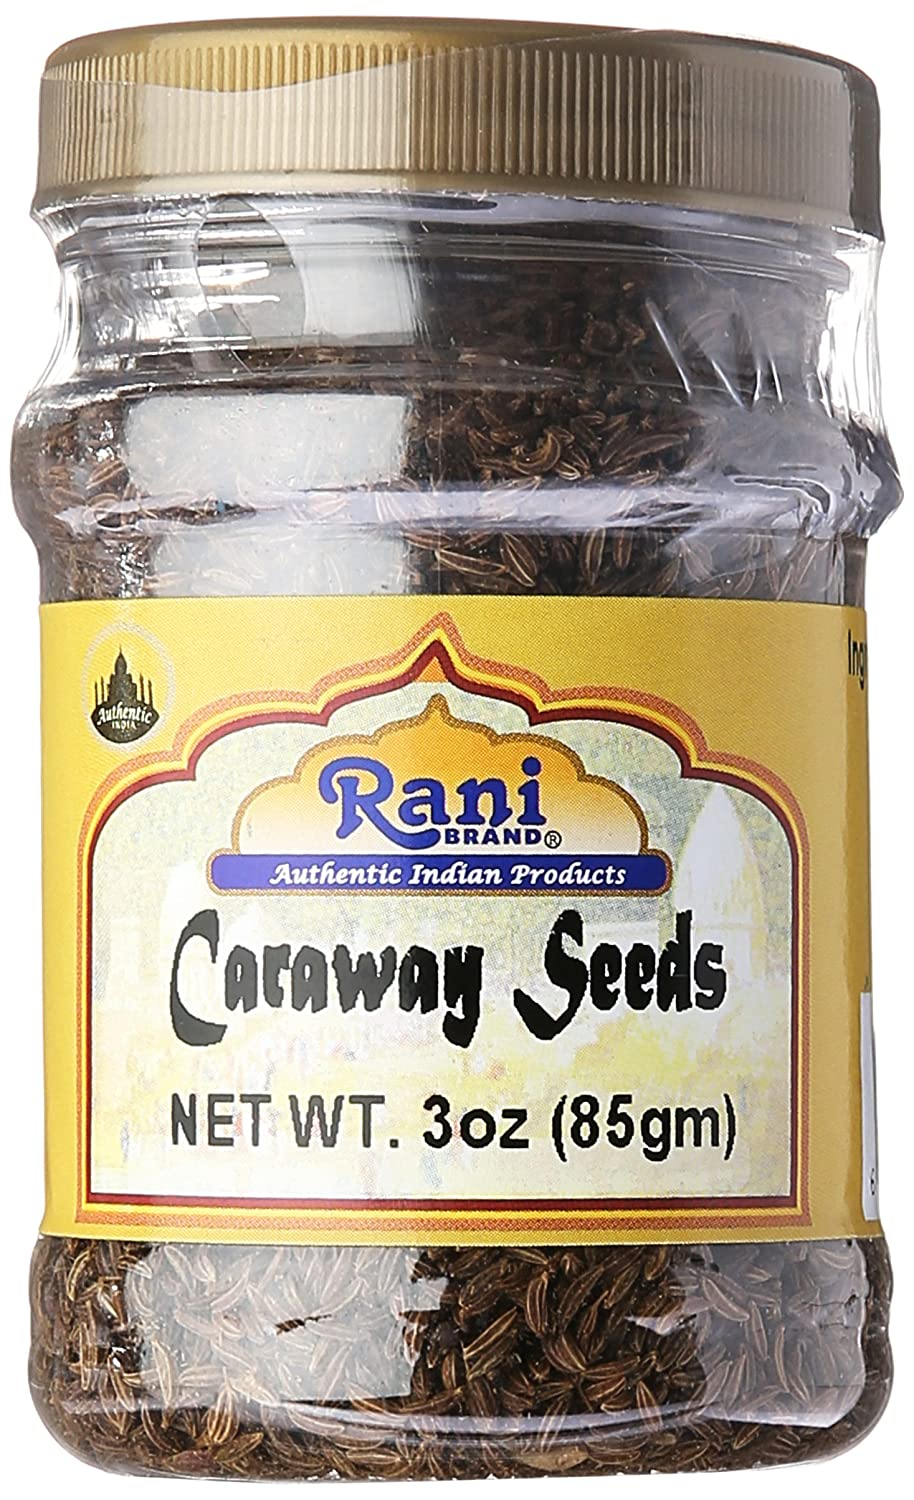 Rani Caraway Seeds (Siya Zeera) Spice 3oz (85g) Natural ~ Gluten Free Ingredients | NON-GMO | Vegan | Indian Origin